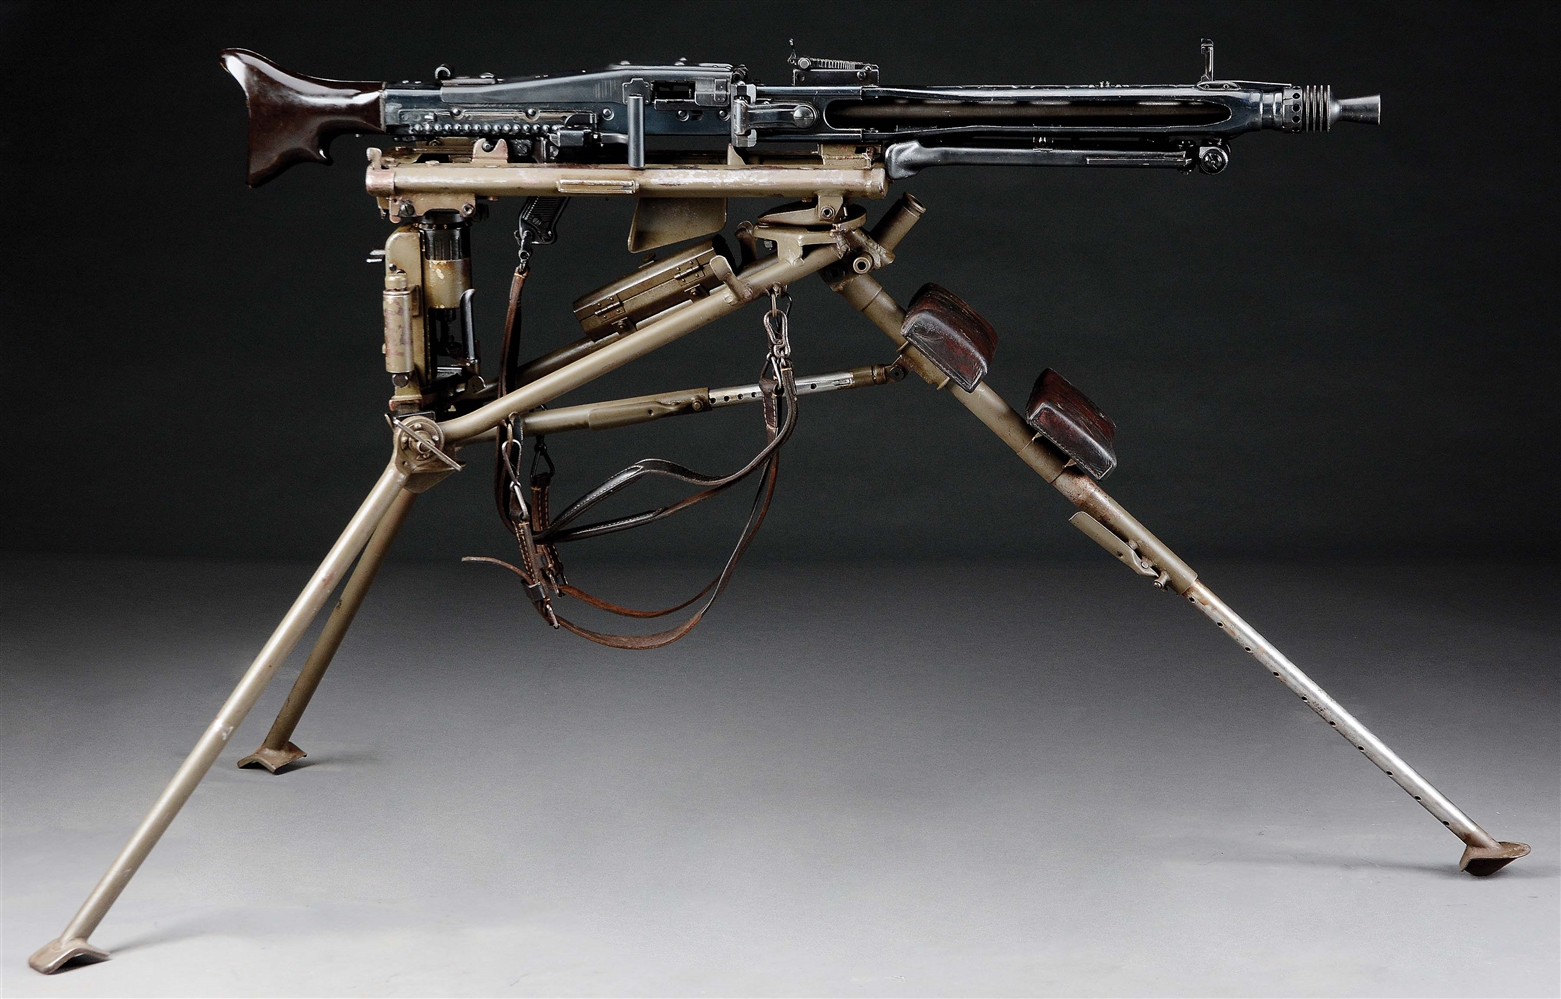 (N) SUPERB AND ICONIC GERMAN WW2 MAUSER MANUFACTURED MG 42 MACHINE GUN ON LAFETTE MOUNT (CURIO & RELIC)